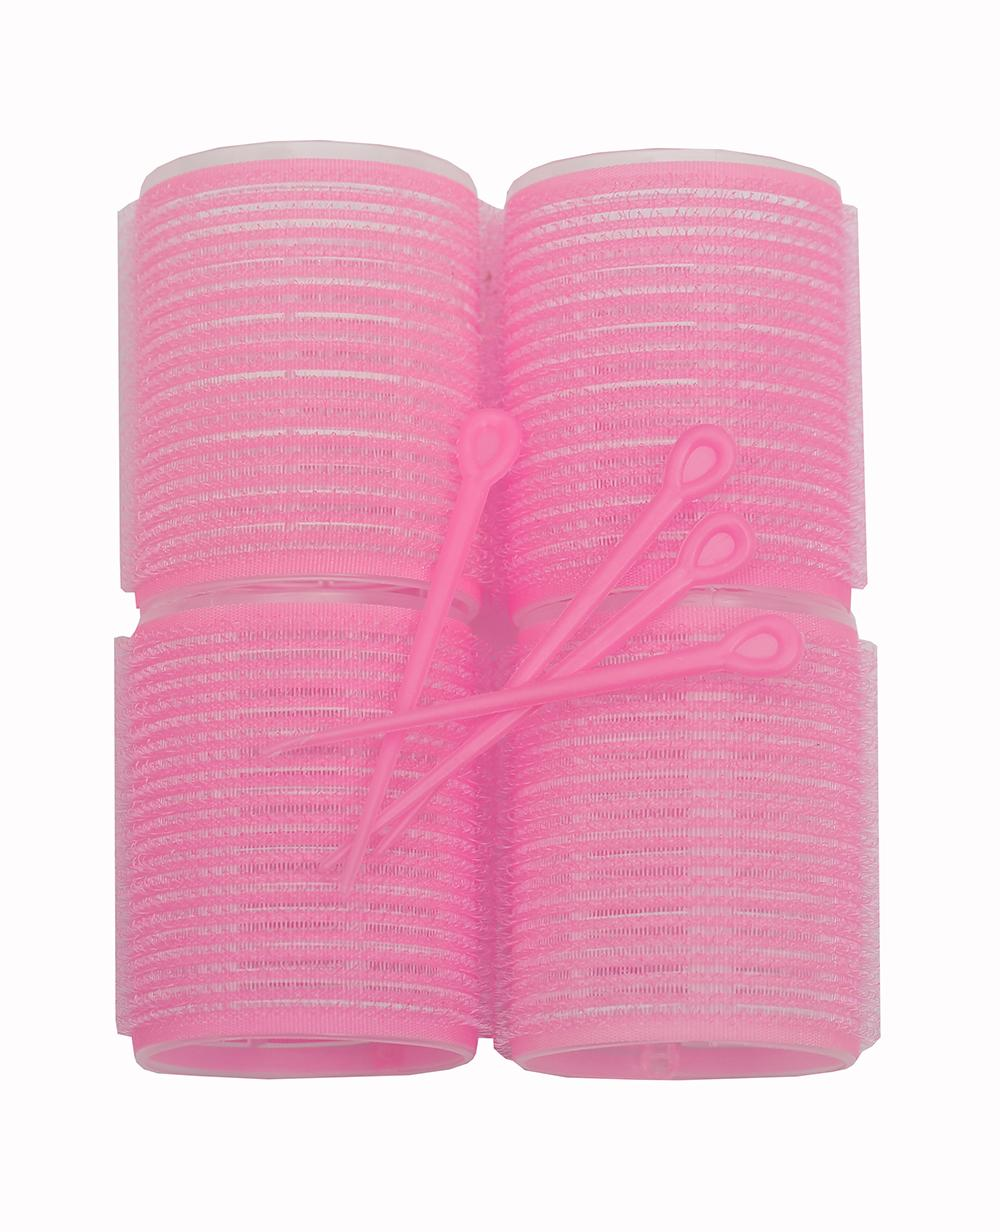 Xcluzive 4 Large Velcro Rollers + 4Pins